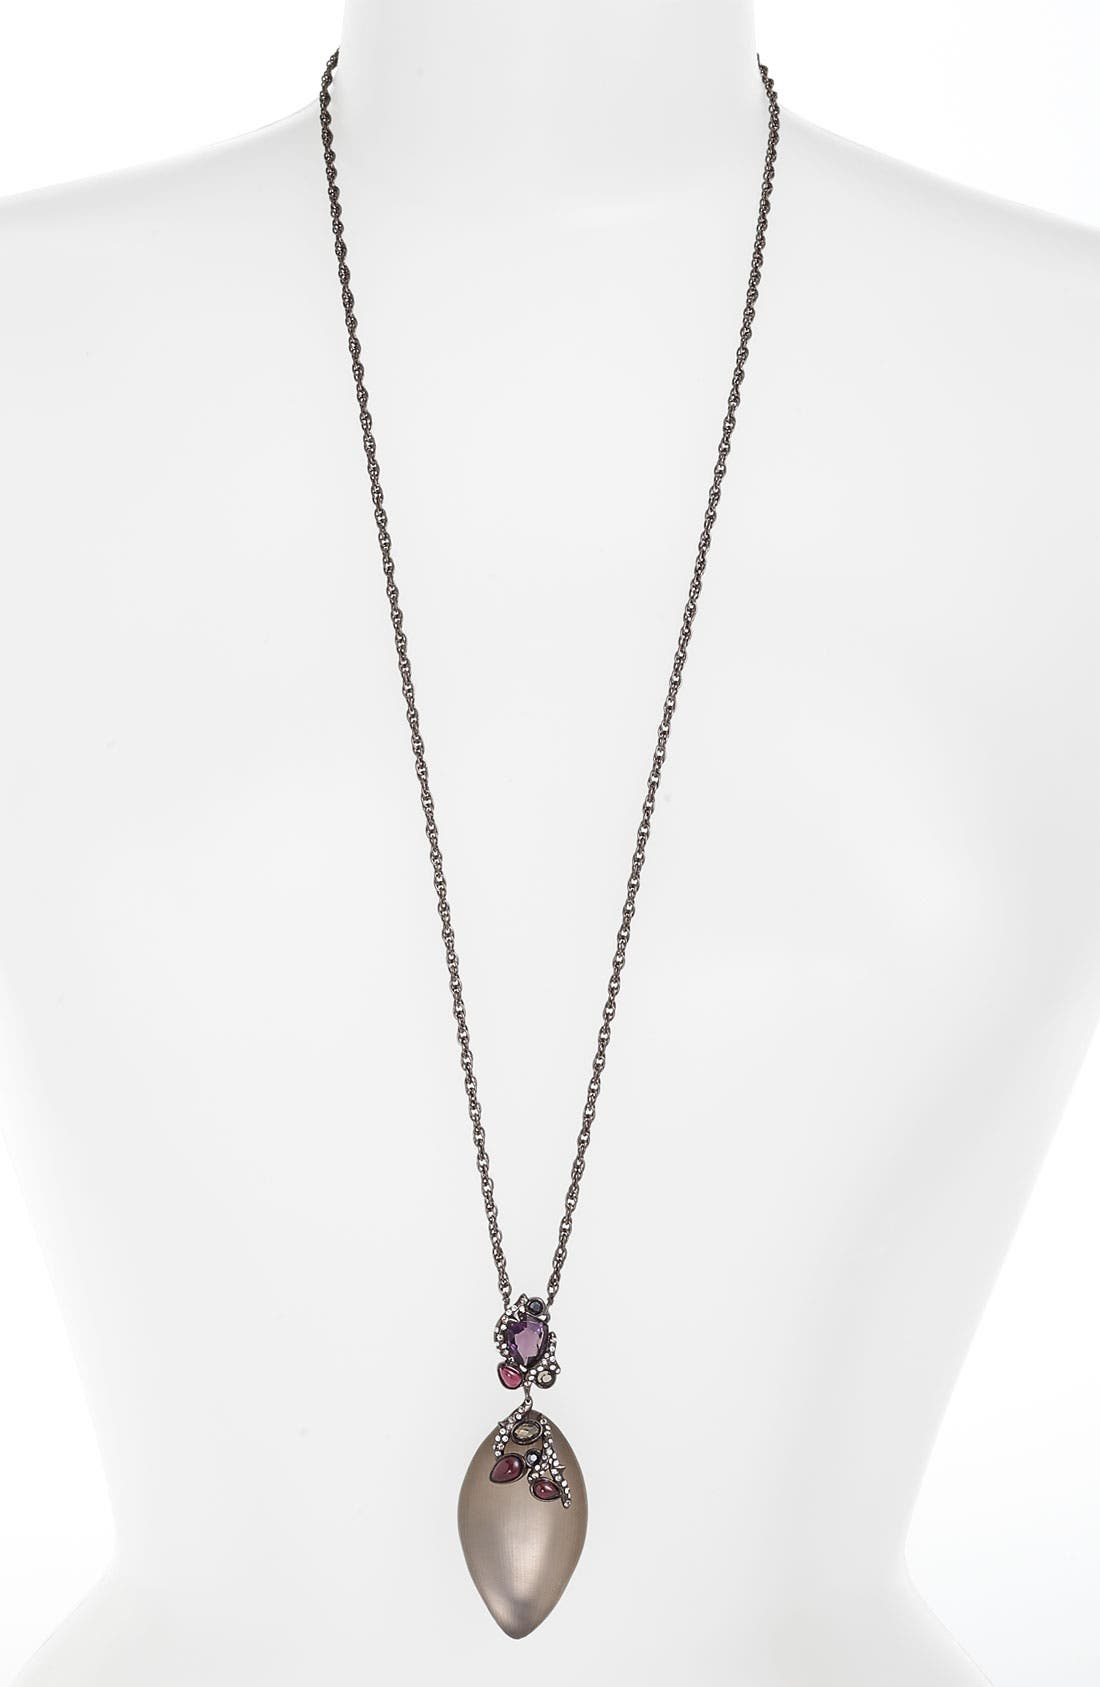 Alternate Image 1 Selected - Alexis Bittar 'Allegory' Gem Clustered Pendant Necklace (Nordstrom Exclusive)